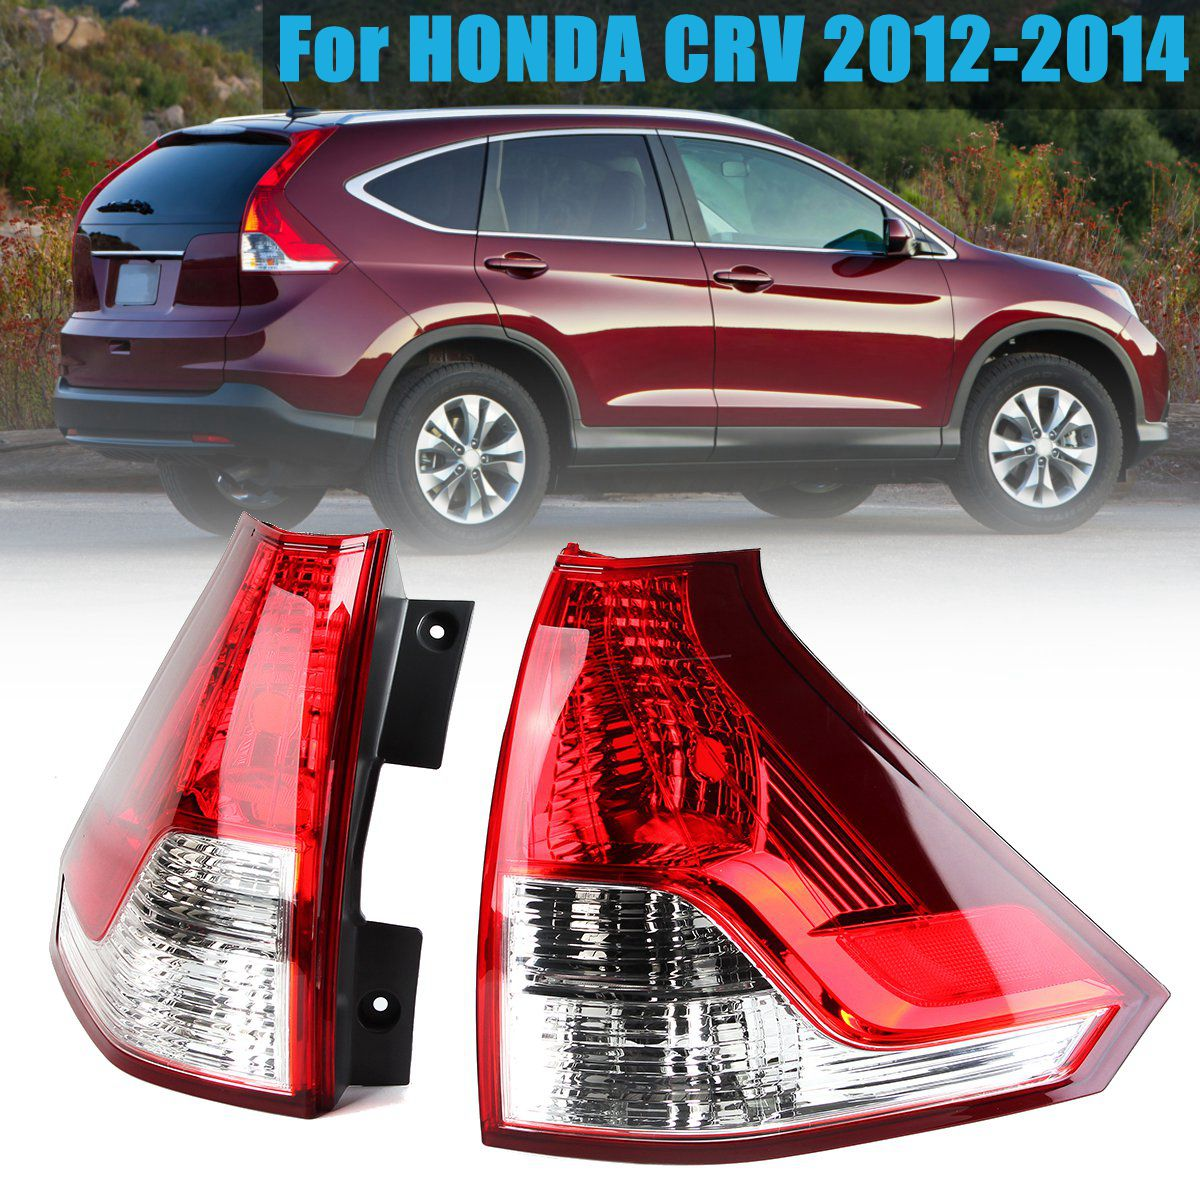 Tail Light Clear Red Left/Right Tail Rear Bumper Light LED Brake Light Tail Lamp for Honda CRV 2012 2013 2014 цена